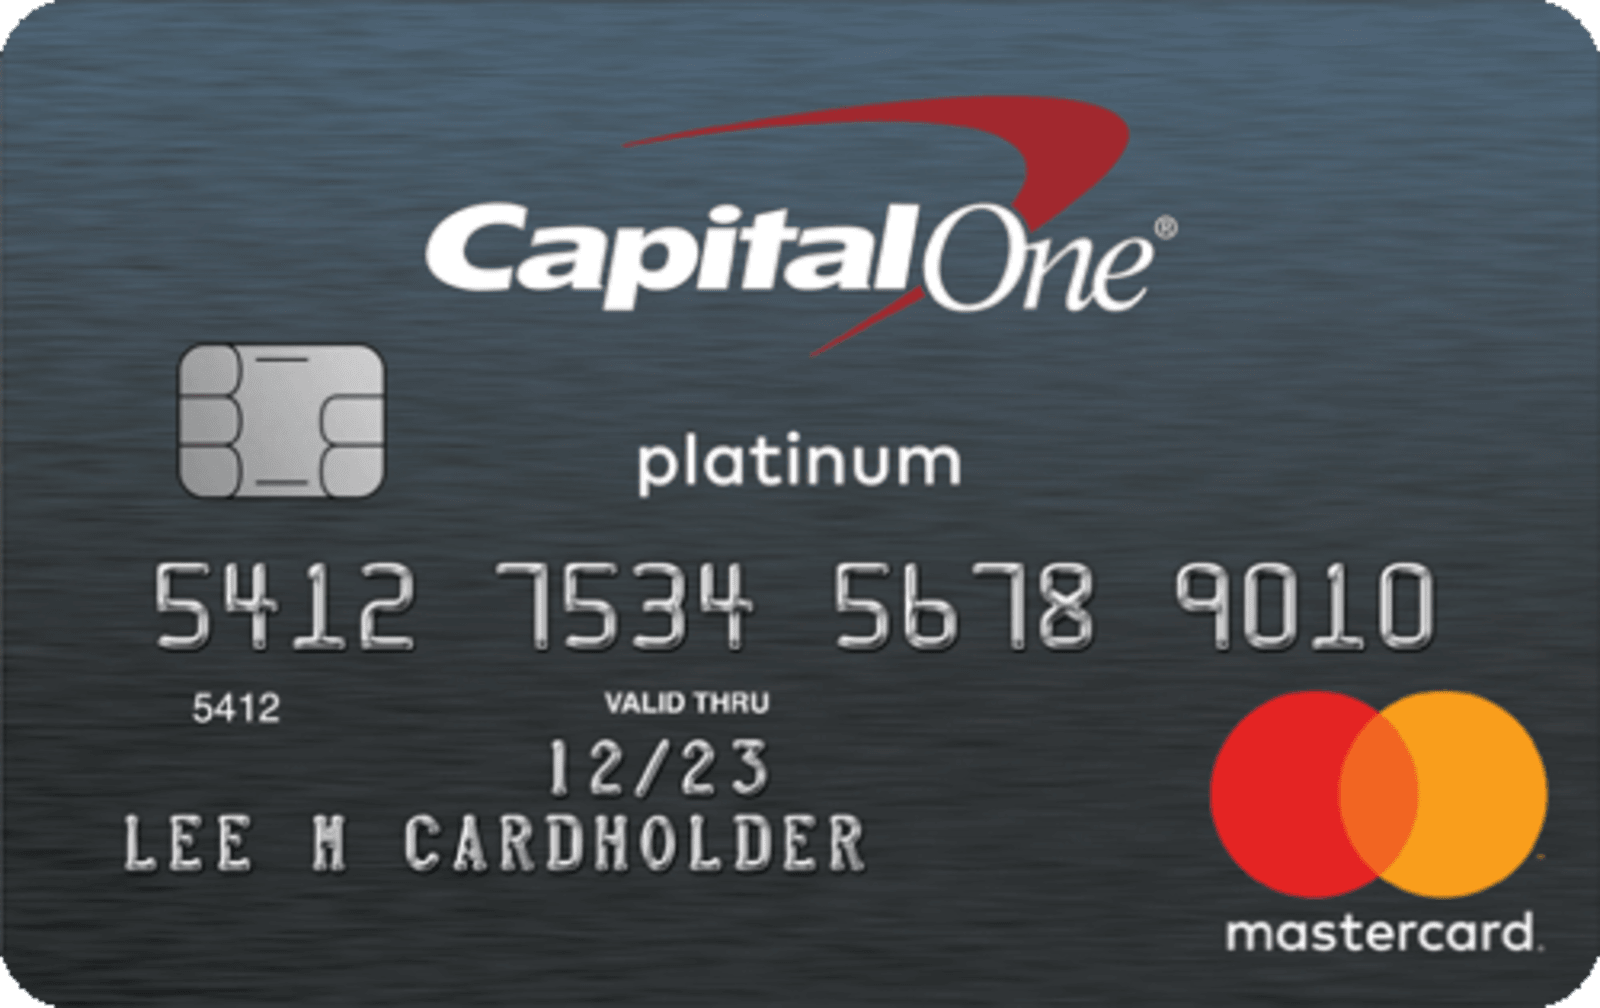 The Complete Guide to Comenity Bank Credit Cards - ValuePenguin